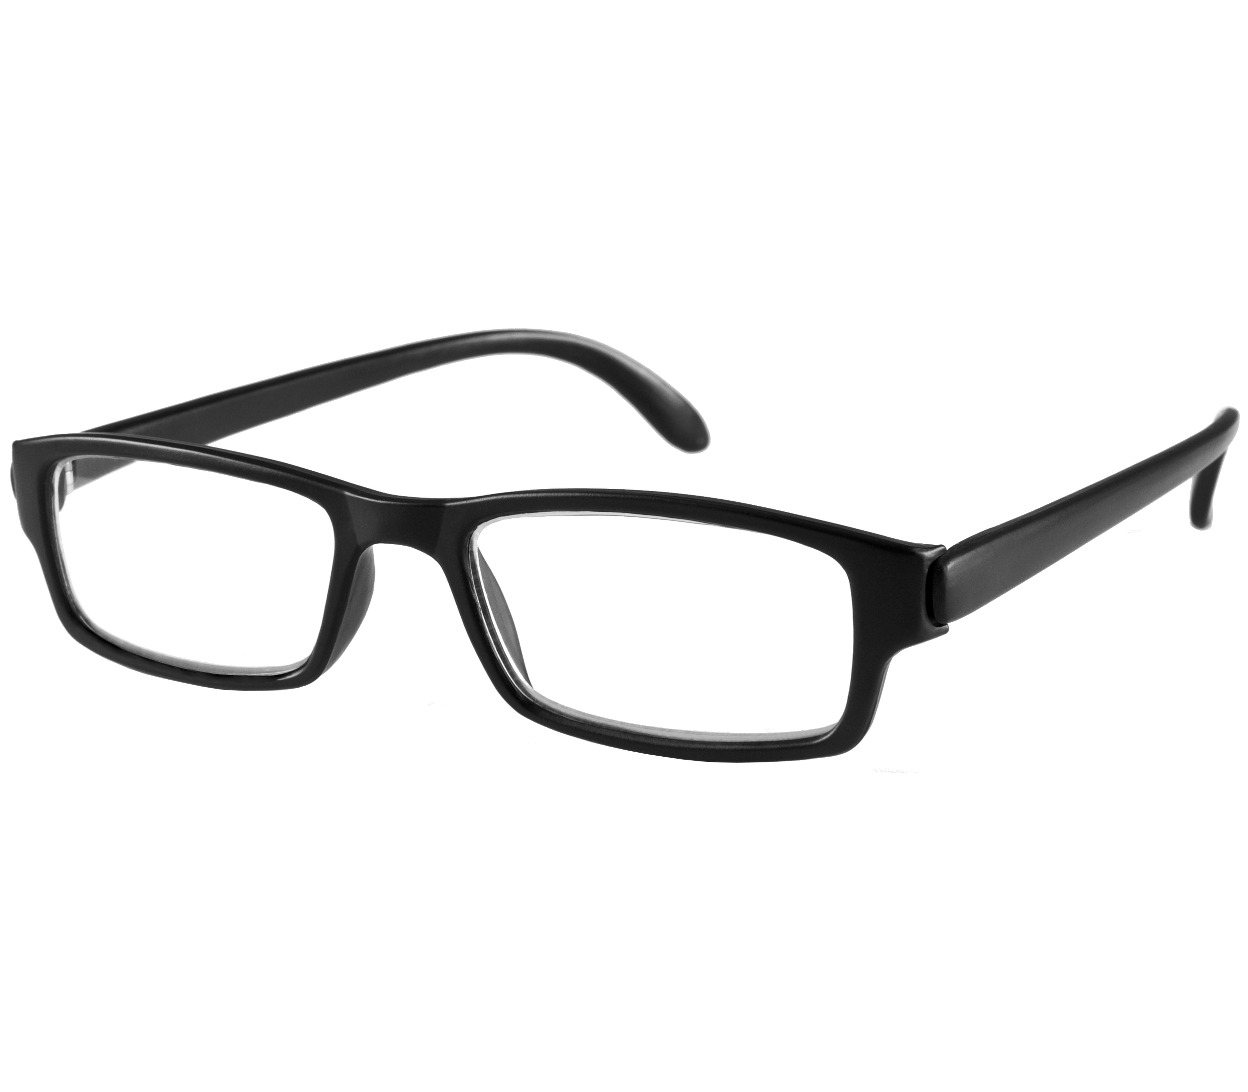 Main Image (Angle) - Jump (Black) Classic Reading Glasses